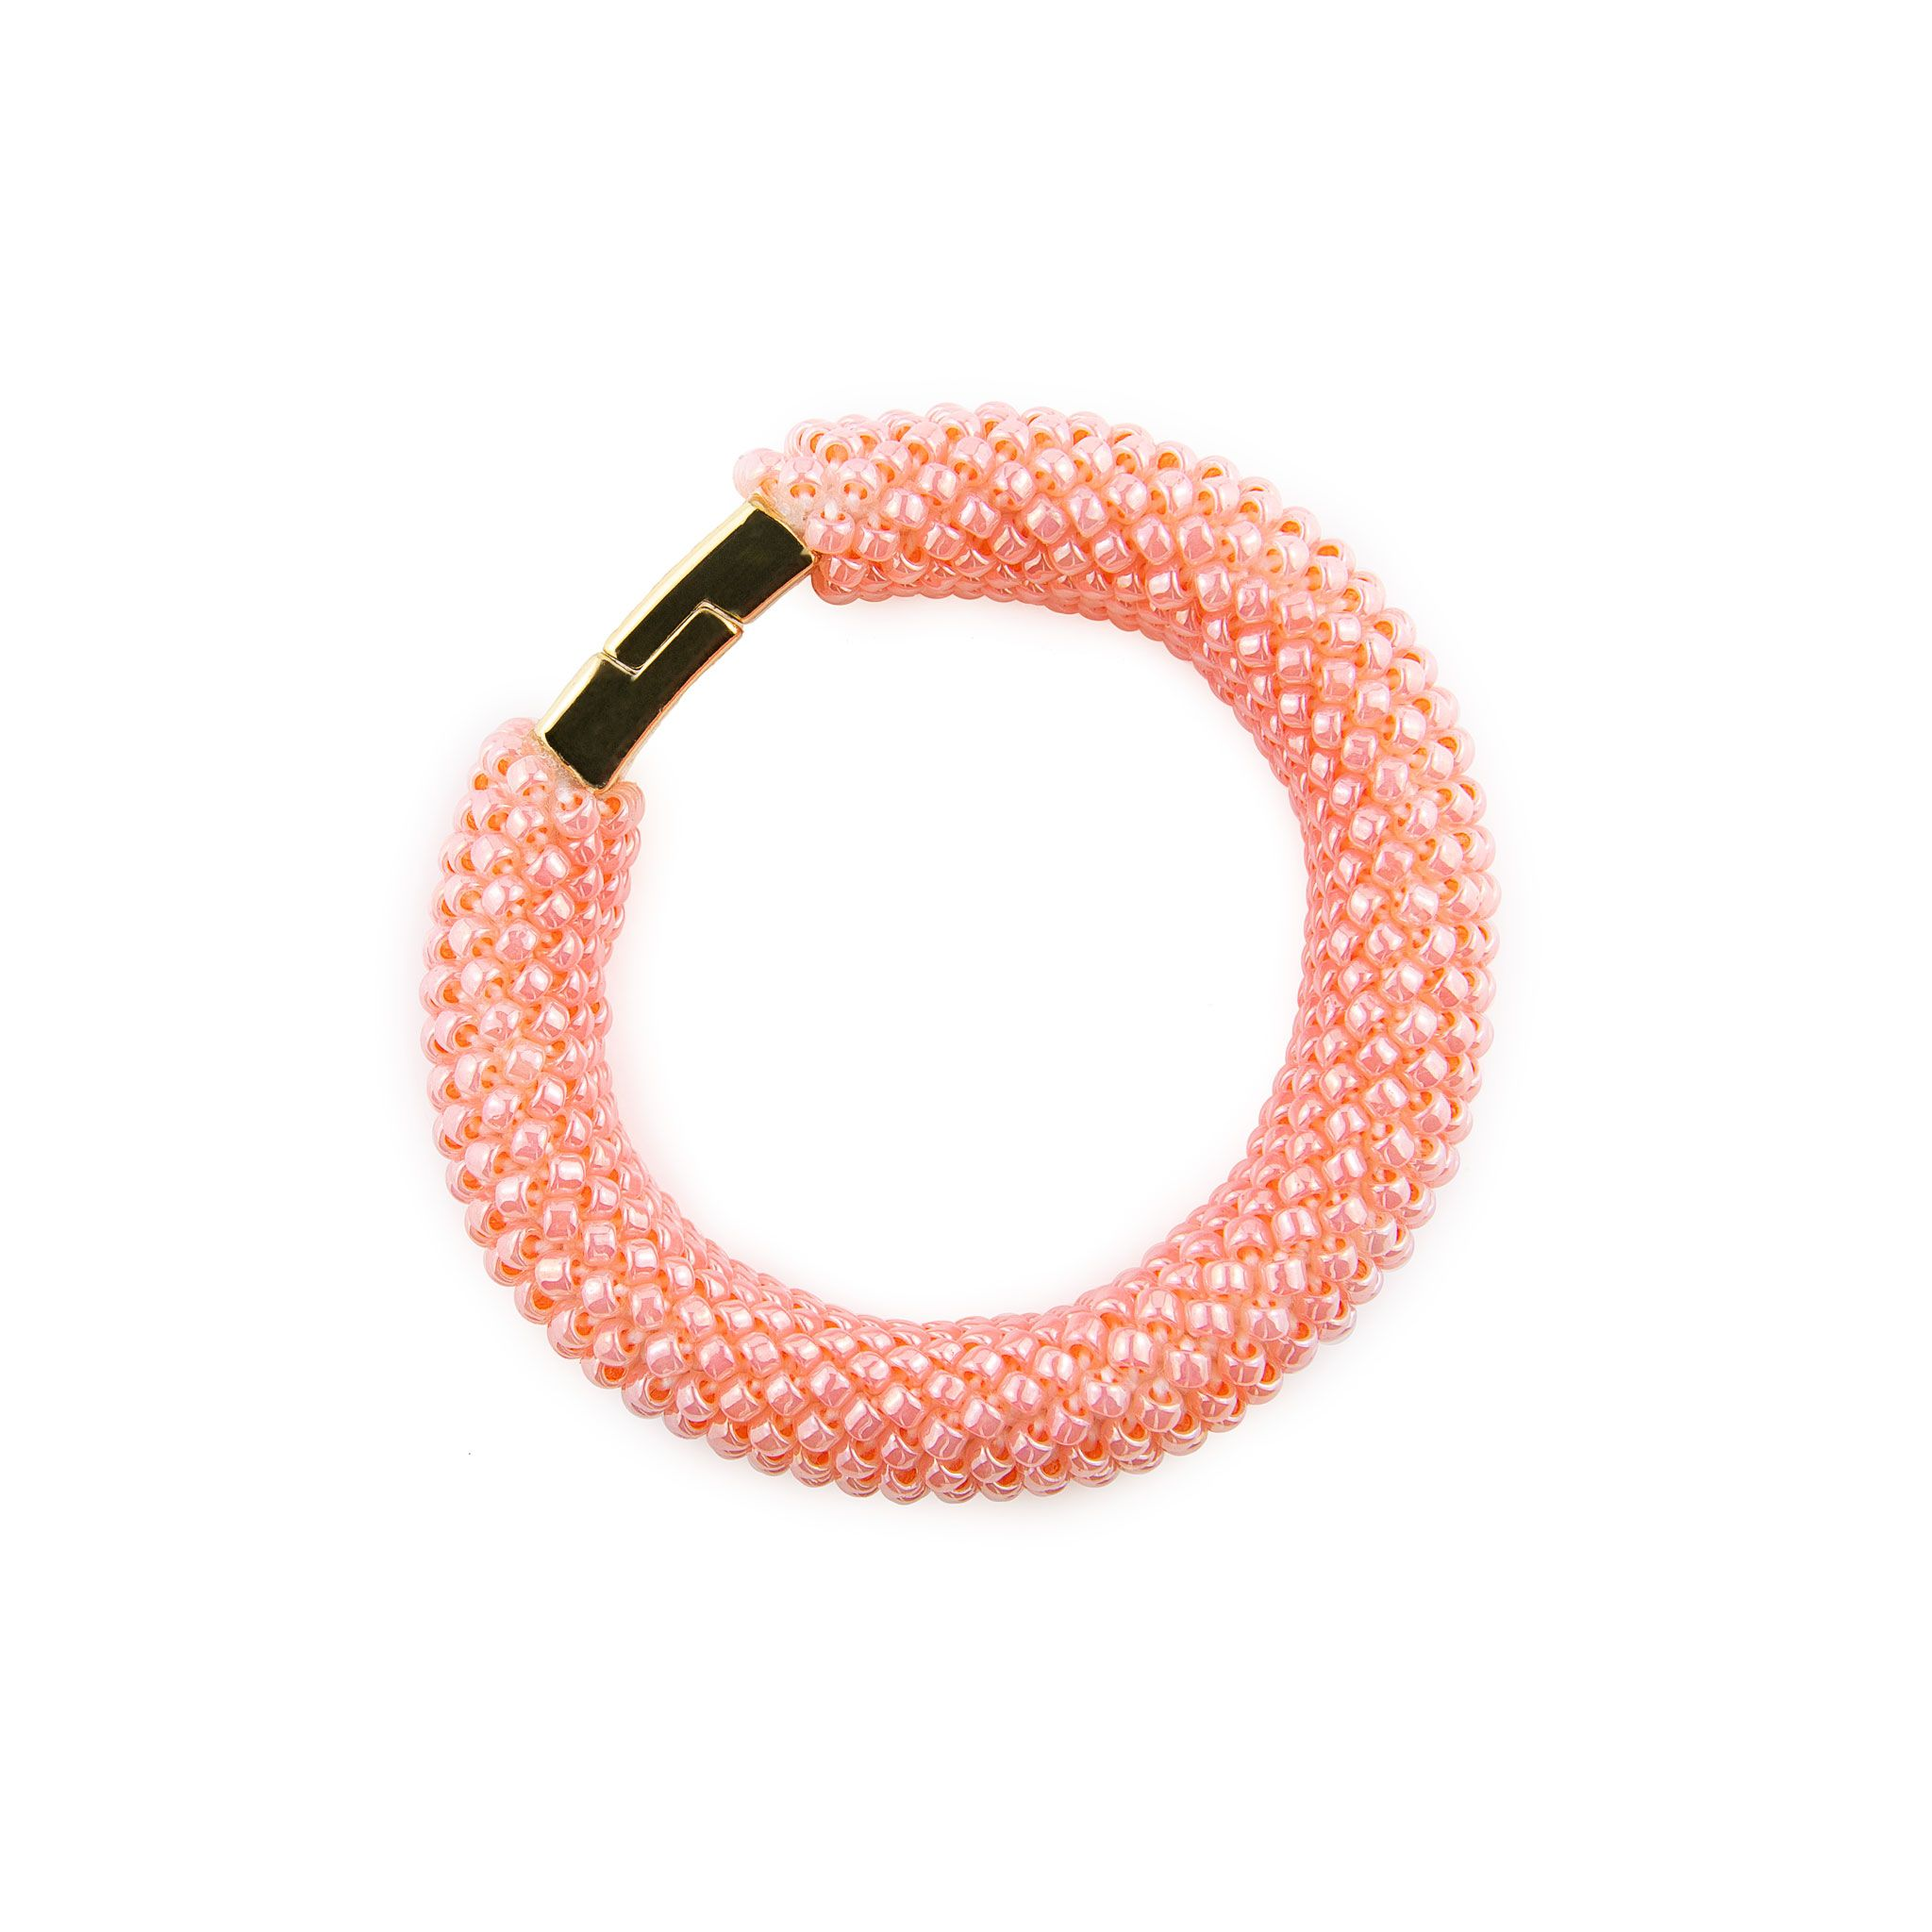 Coral Bead Embroidery Bracelet